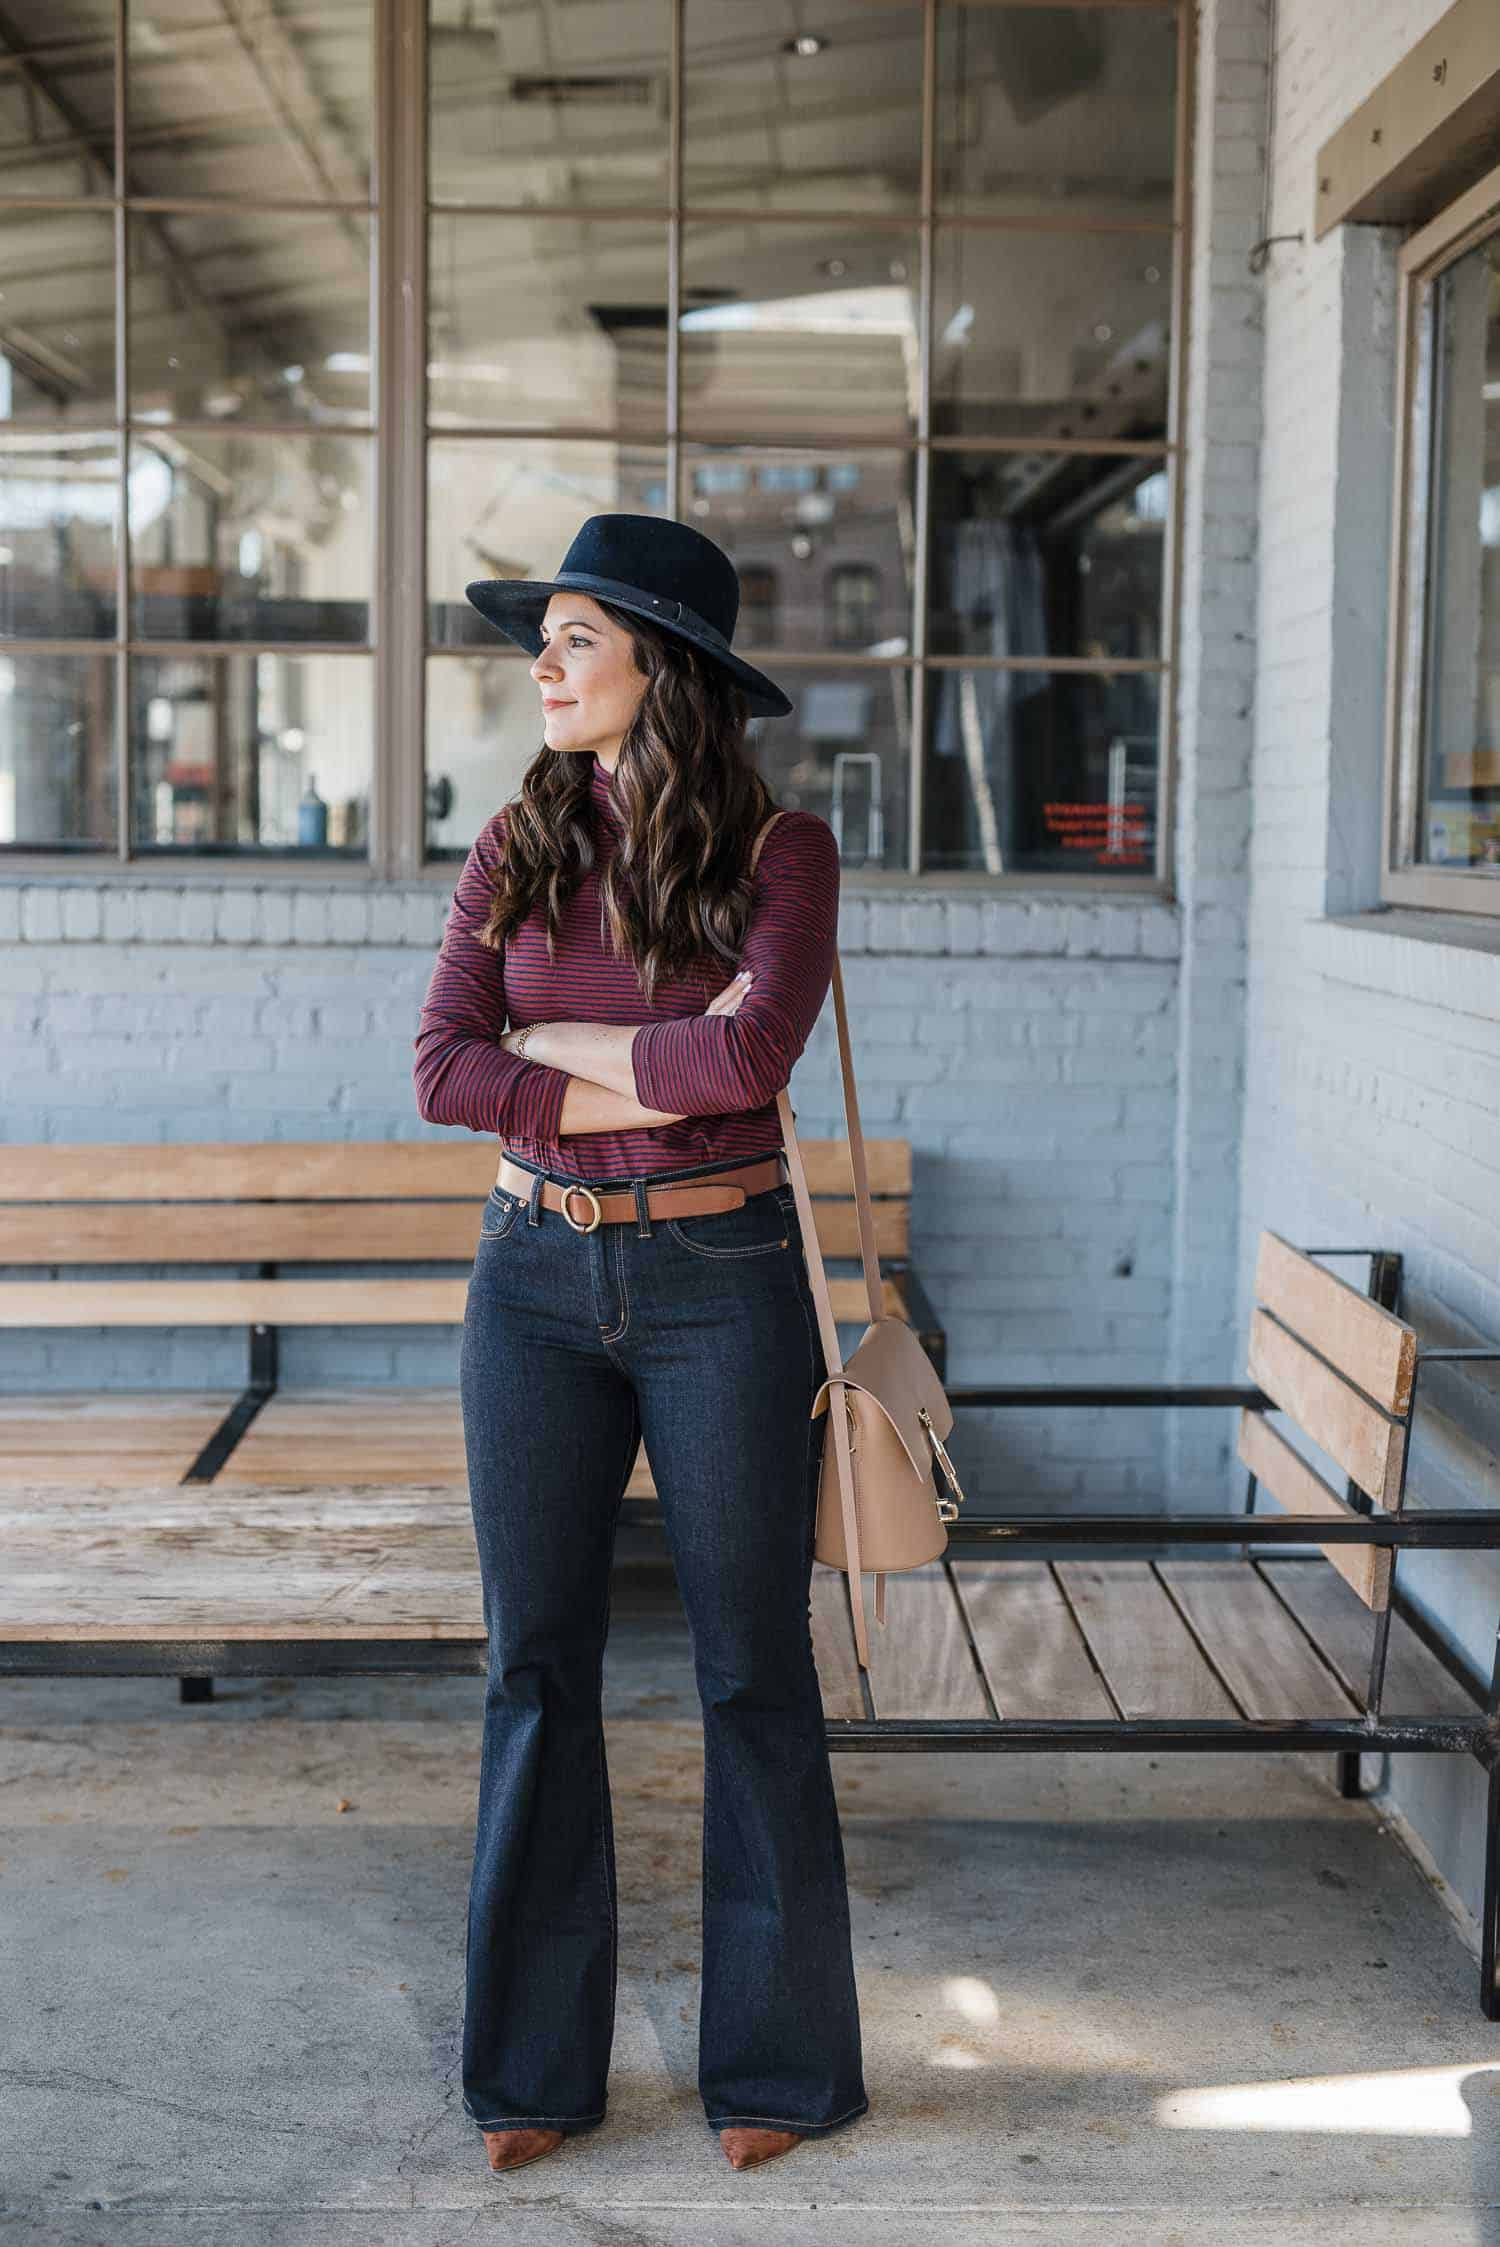 My Style Vita Outfit Details: Striped Madewell Turtleneck, Wide Leg Jeans, Steve Madden Heels, Rag & Bone Hat